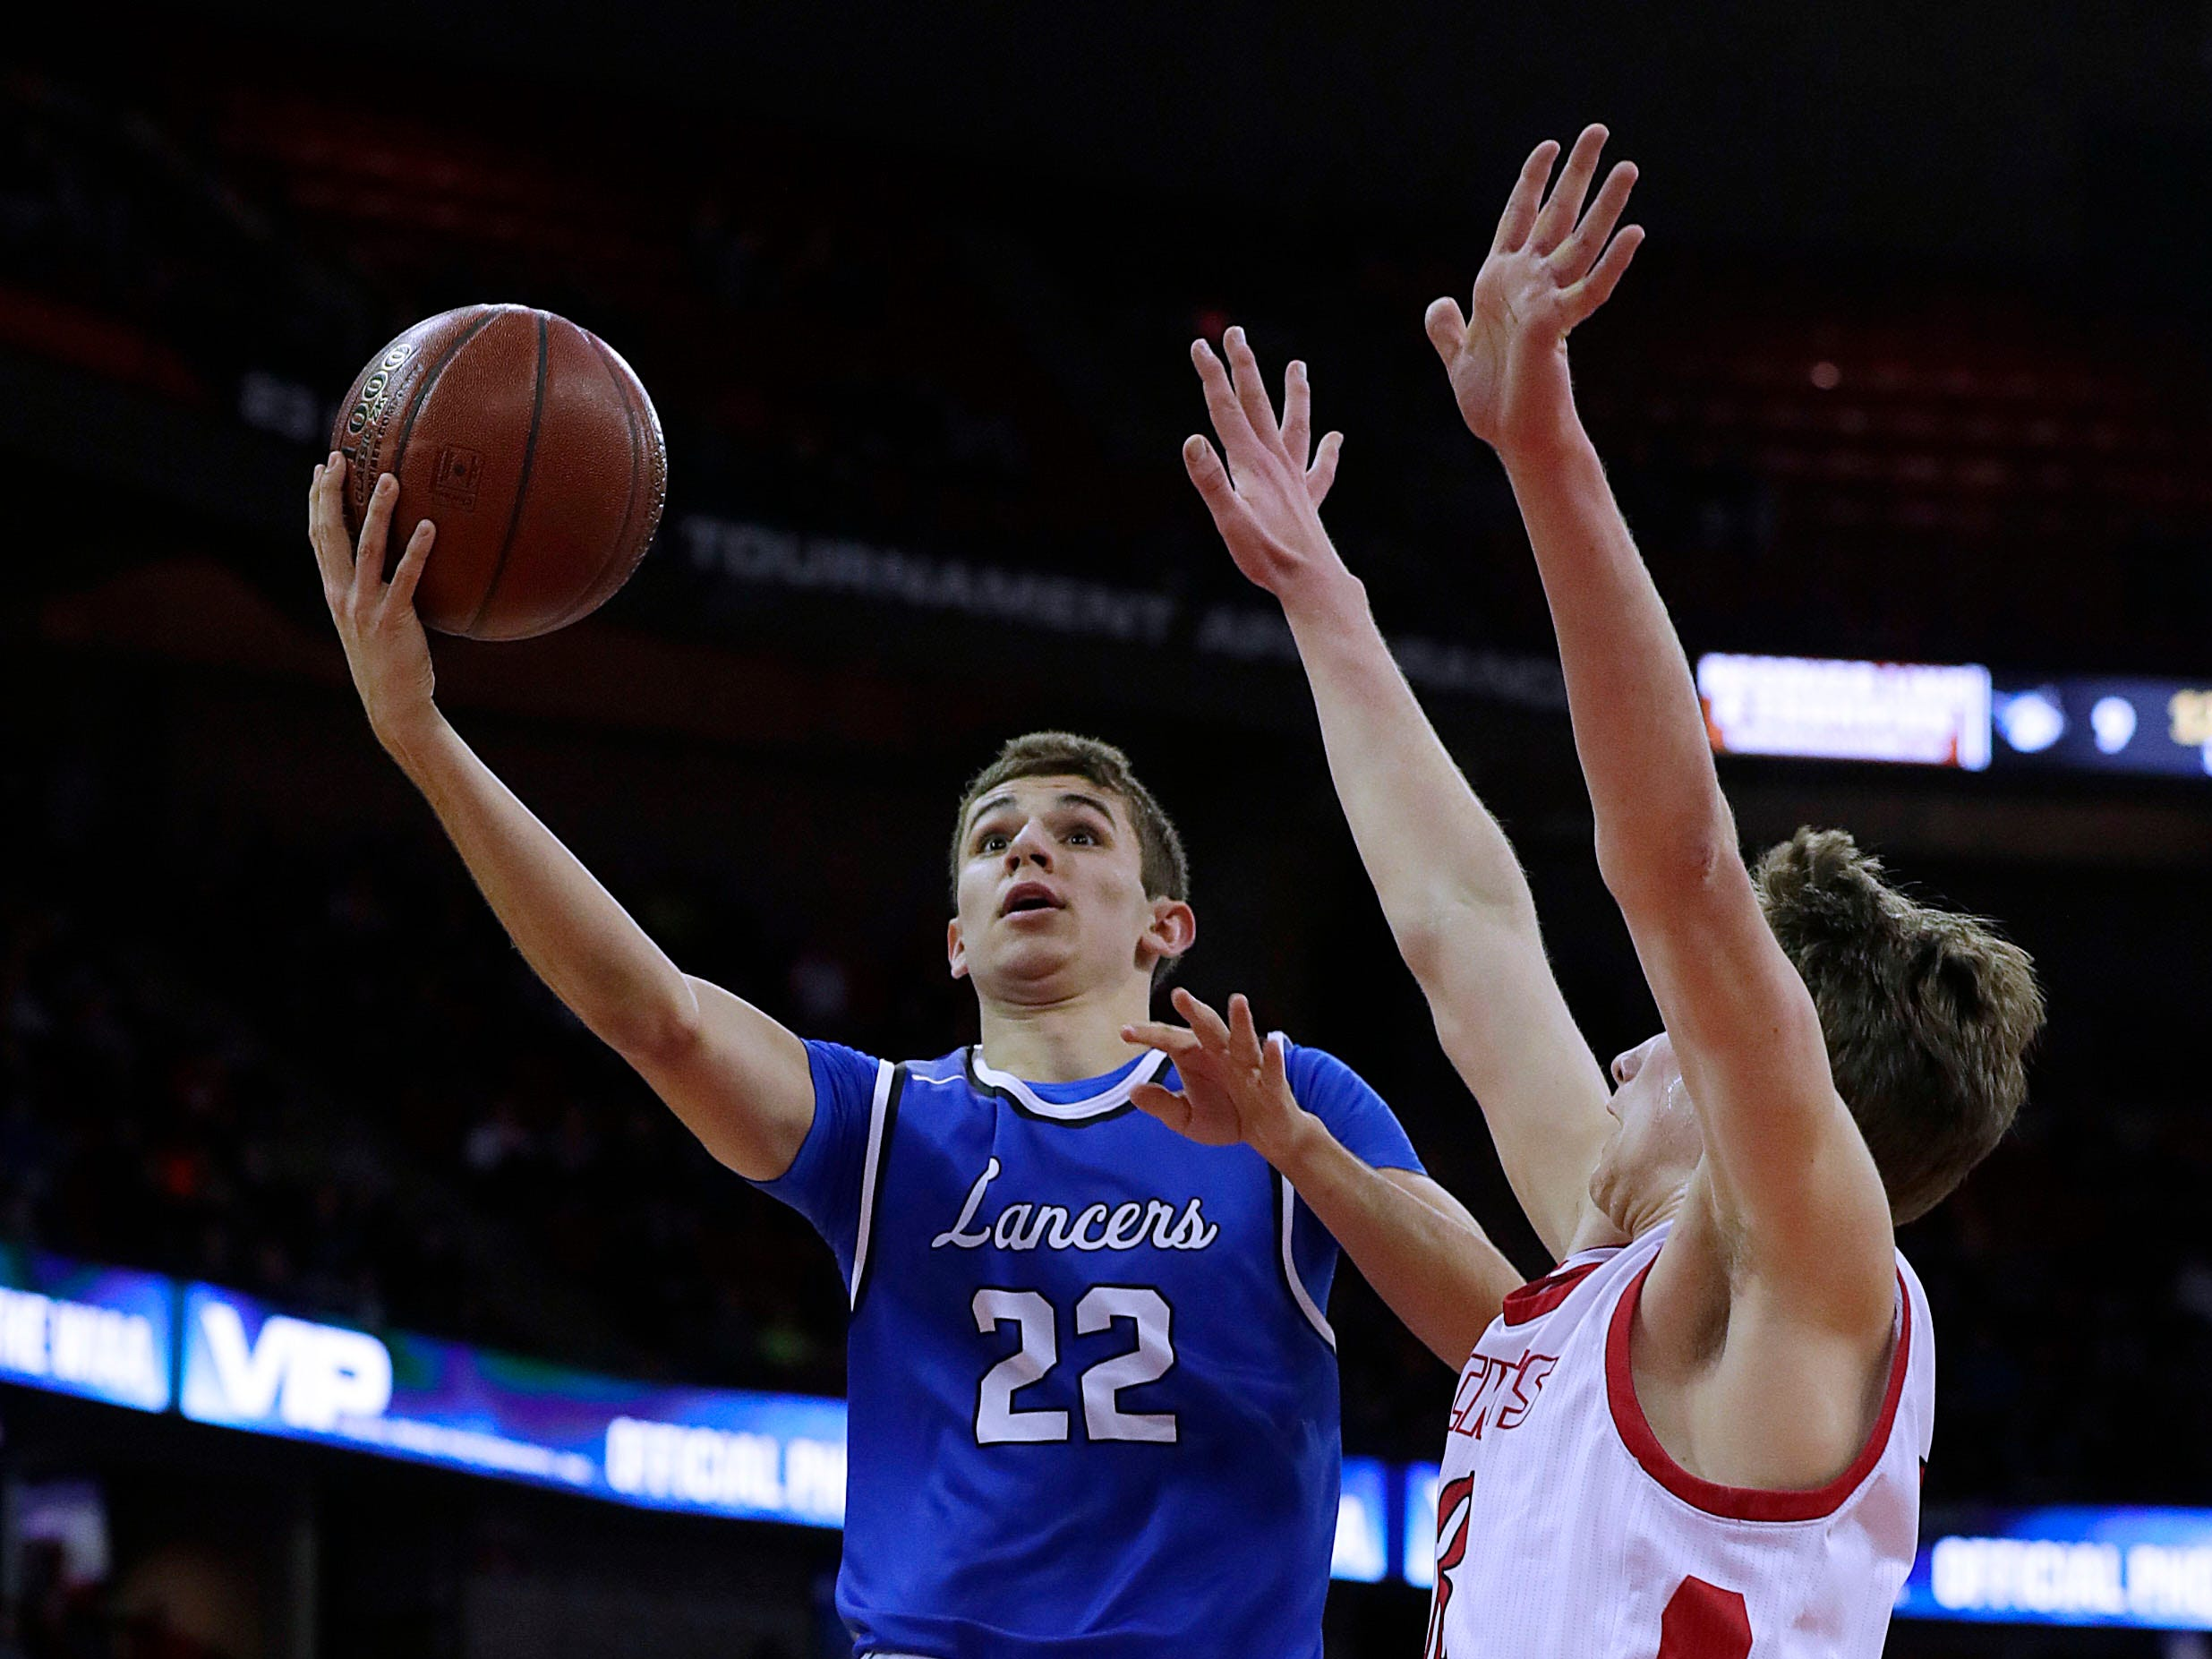 Brookfield Central's Ben Nau scores 10 points during a 61-47 victory over Neenah in the WIAA Division 1 semifinal game.